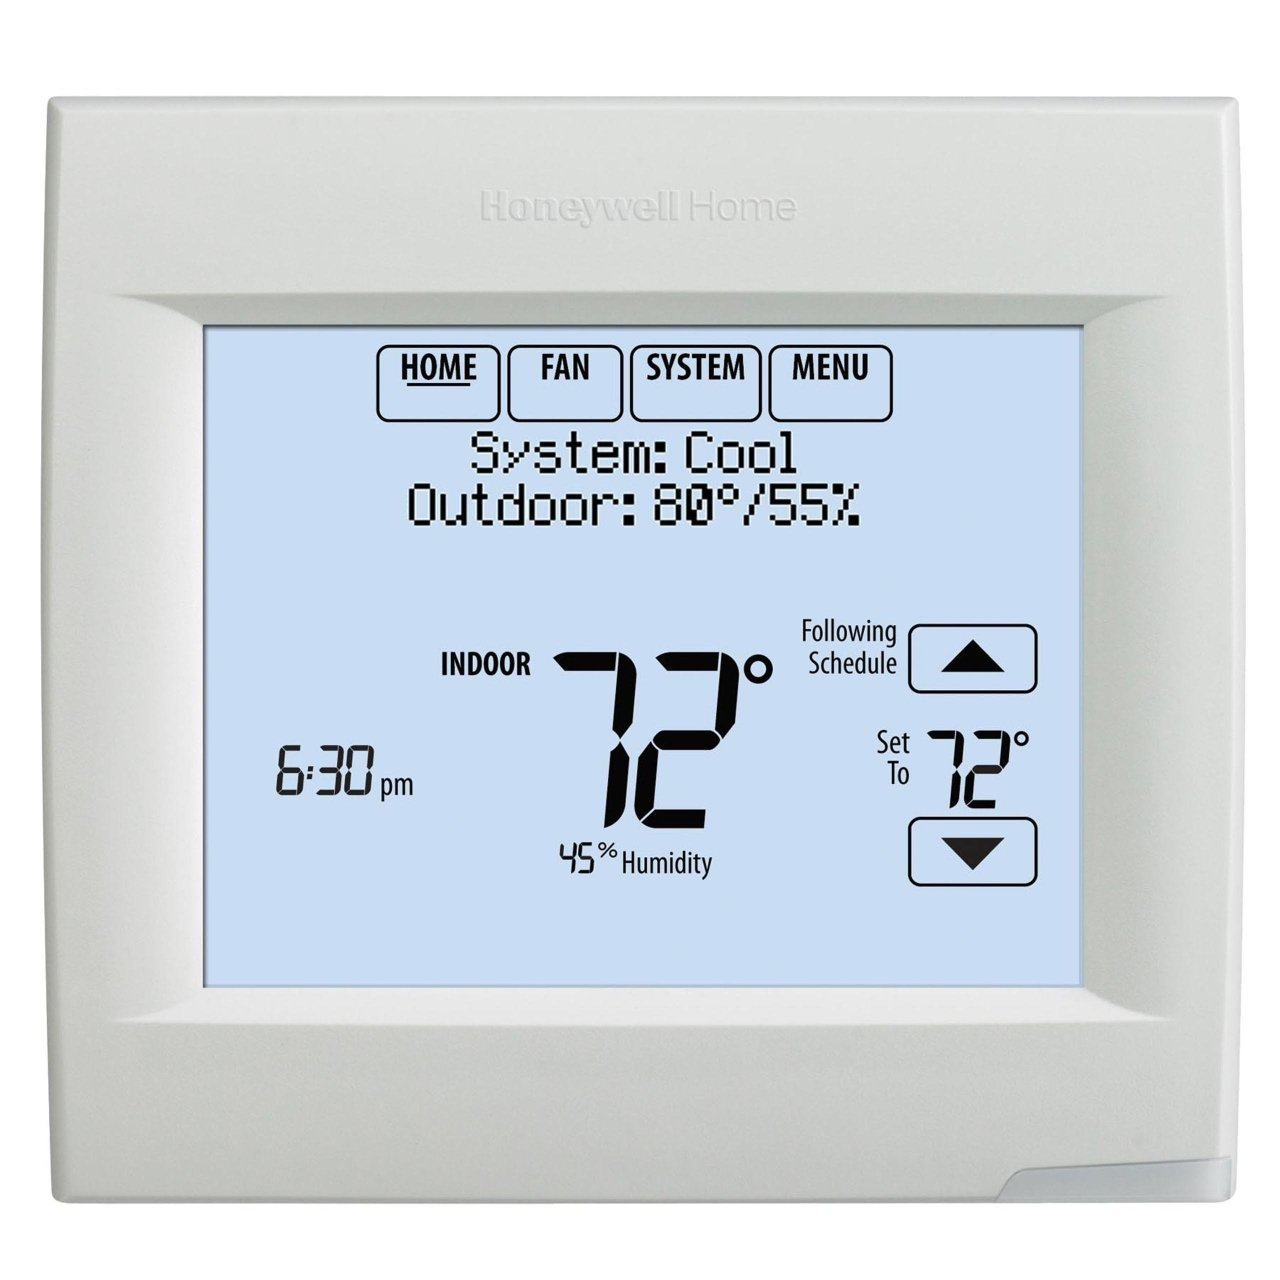 [CSDW_4250]   TH8320R1003/U WiFi Thermostats - Honeywell Home From Resideo | Wiring Diagram Honeywell Th8000 Vision |  | Honeywell Home